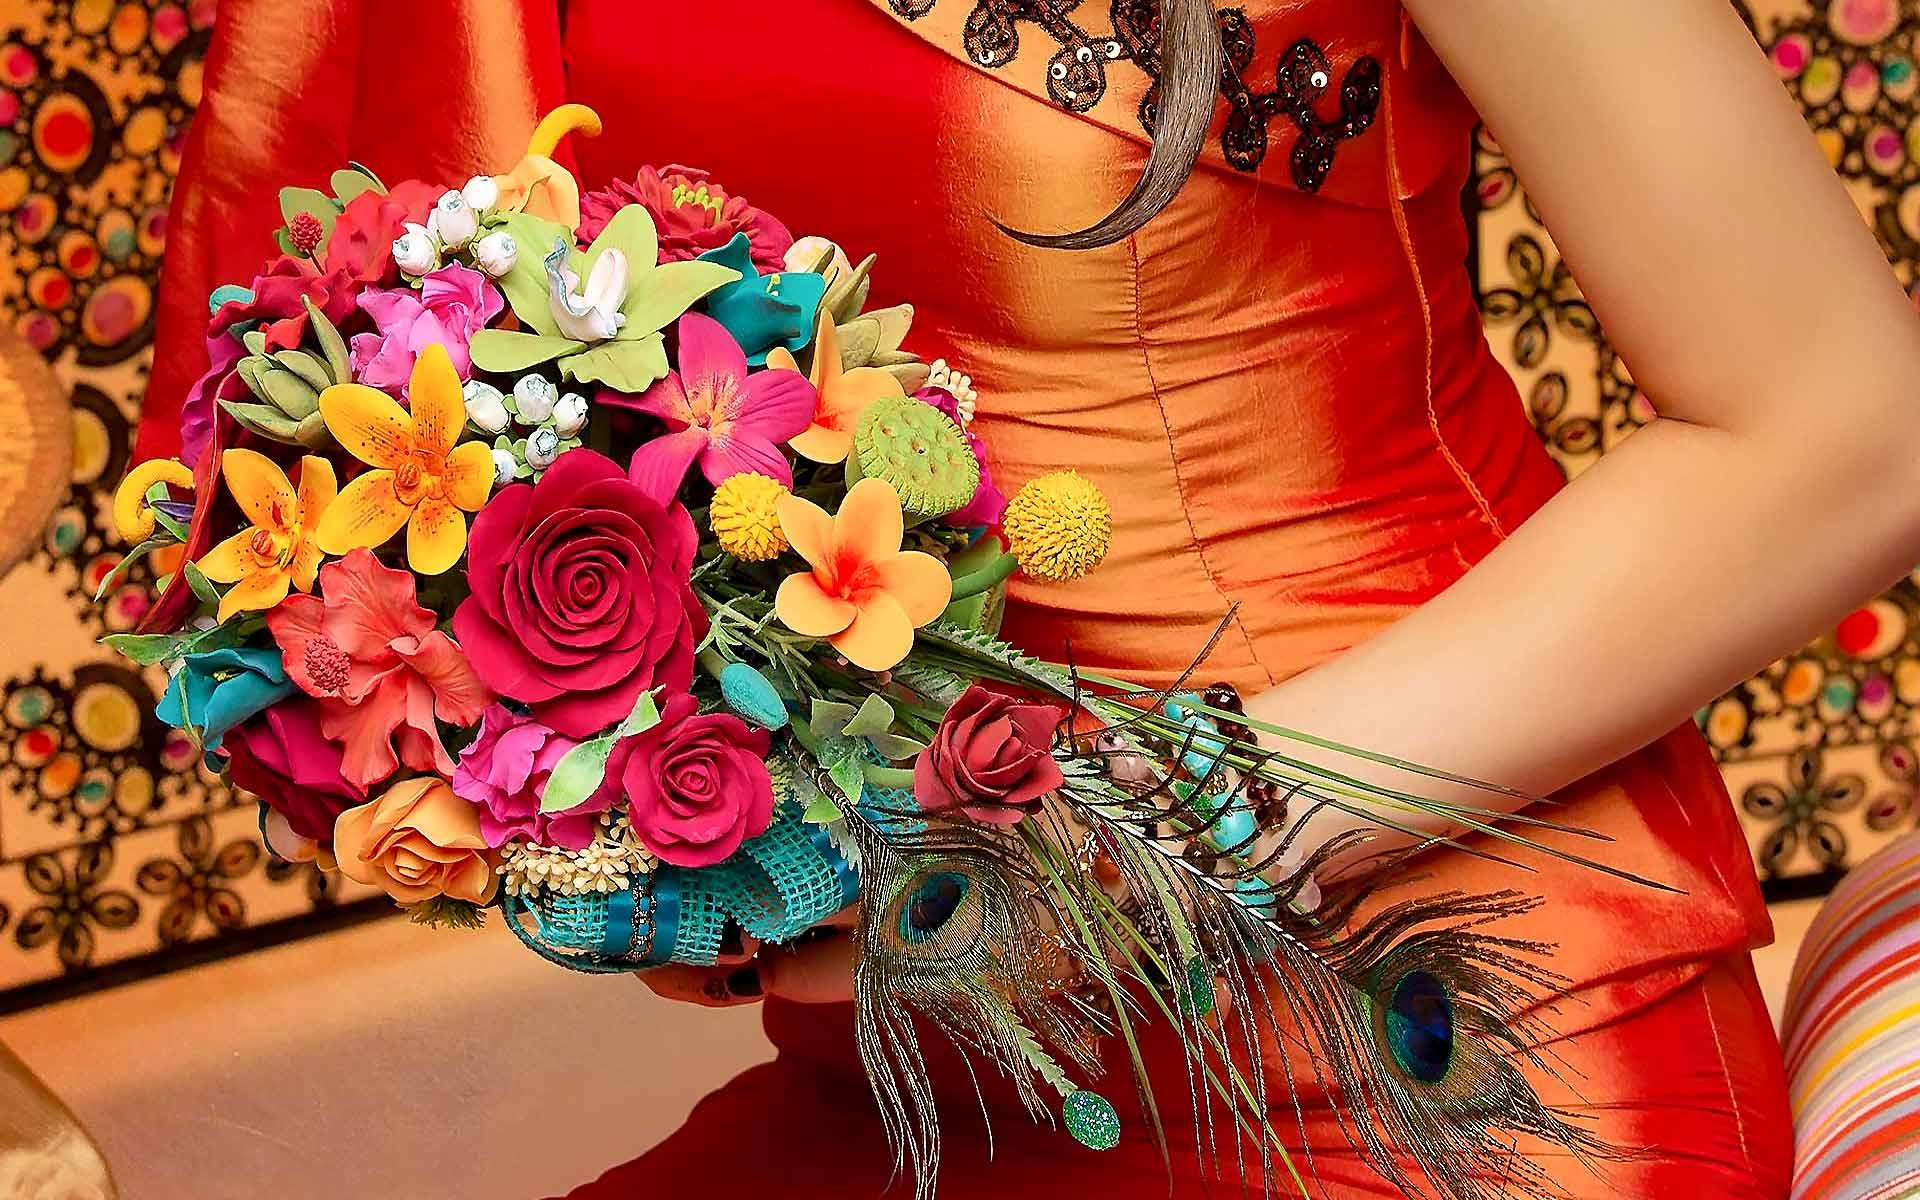 Stunning-Colorful-Wedding-Bouquet-by-Diamond-Events-Wedding-Event-planning-services